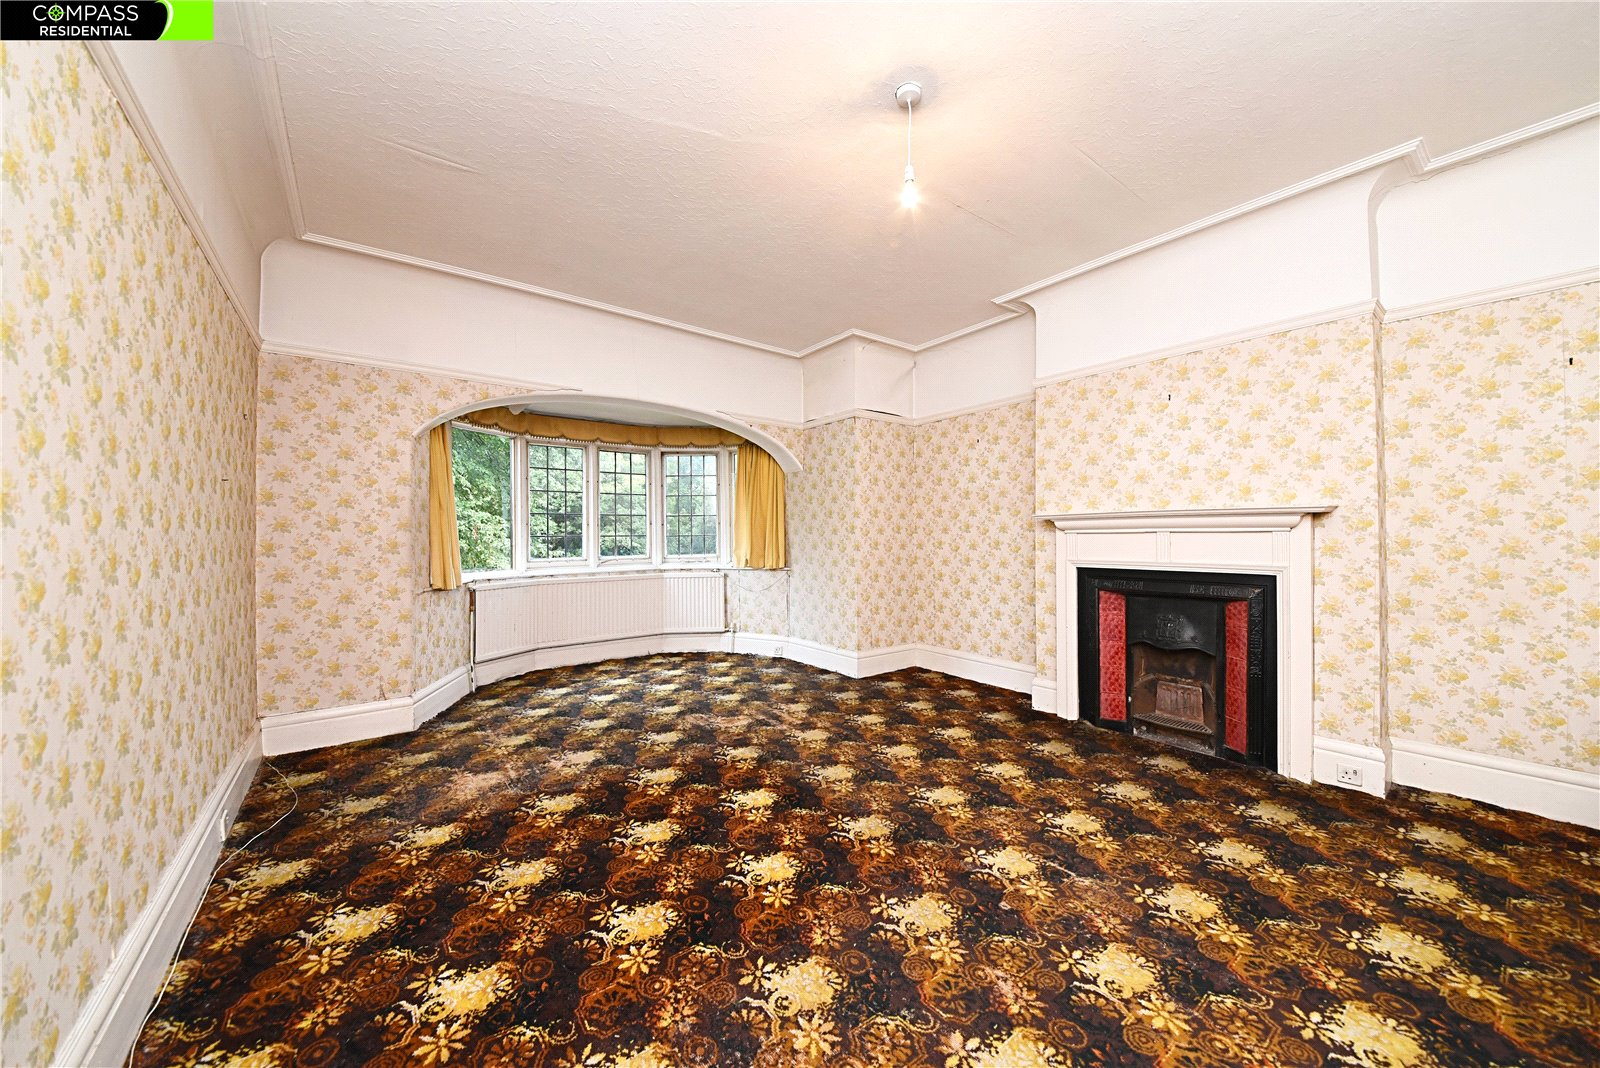 6 bed house for sale in Whetstone, N20 0NN  - Property Image 3